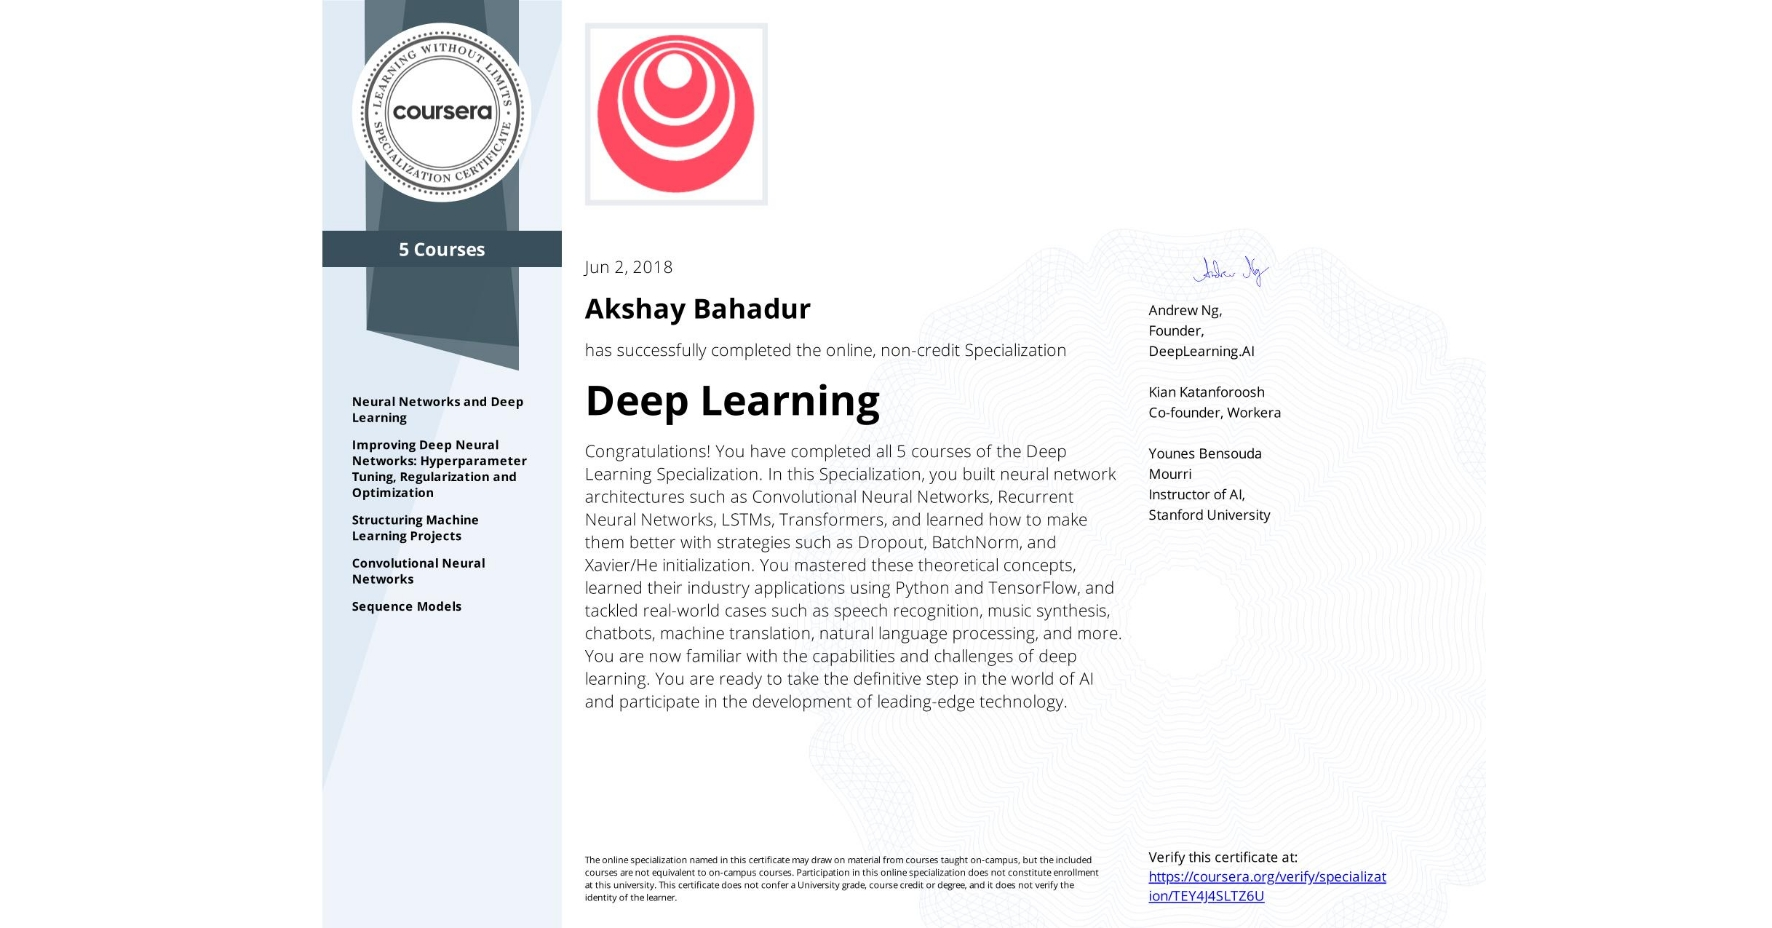 View certificate for Akshay Bahadur, Deep Learning, offered through Coursera. The Deep Learning Specialization is designed to prepare learners to participate in the development of cutting-edge AI technology, and to understand the capability, the challenges, and the consequences of the rise of deep learning. Through five interconnected courses, learners develop a profound knowledge of the hottest AI algorithms, mastering deep learning from its foundations (neural networks) to its industry applications (Computer Vision, Natural Language Processing, Speech Recognition, etc.).